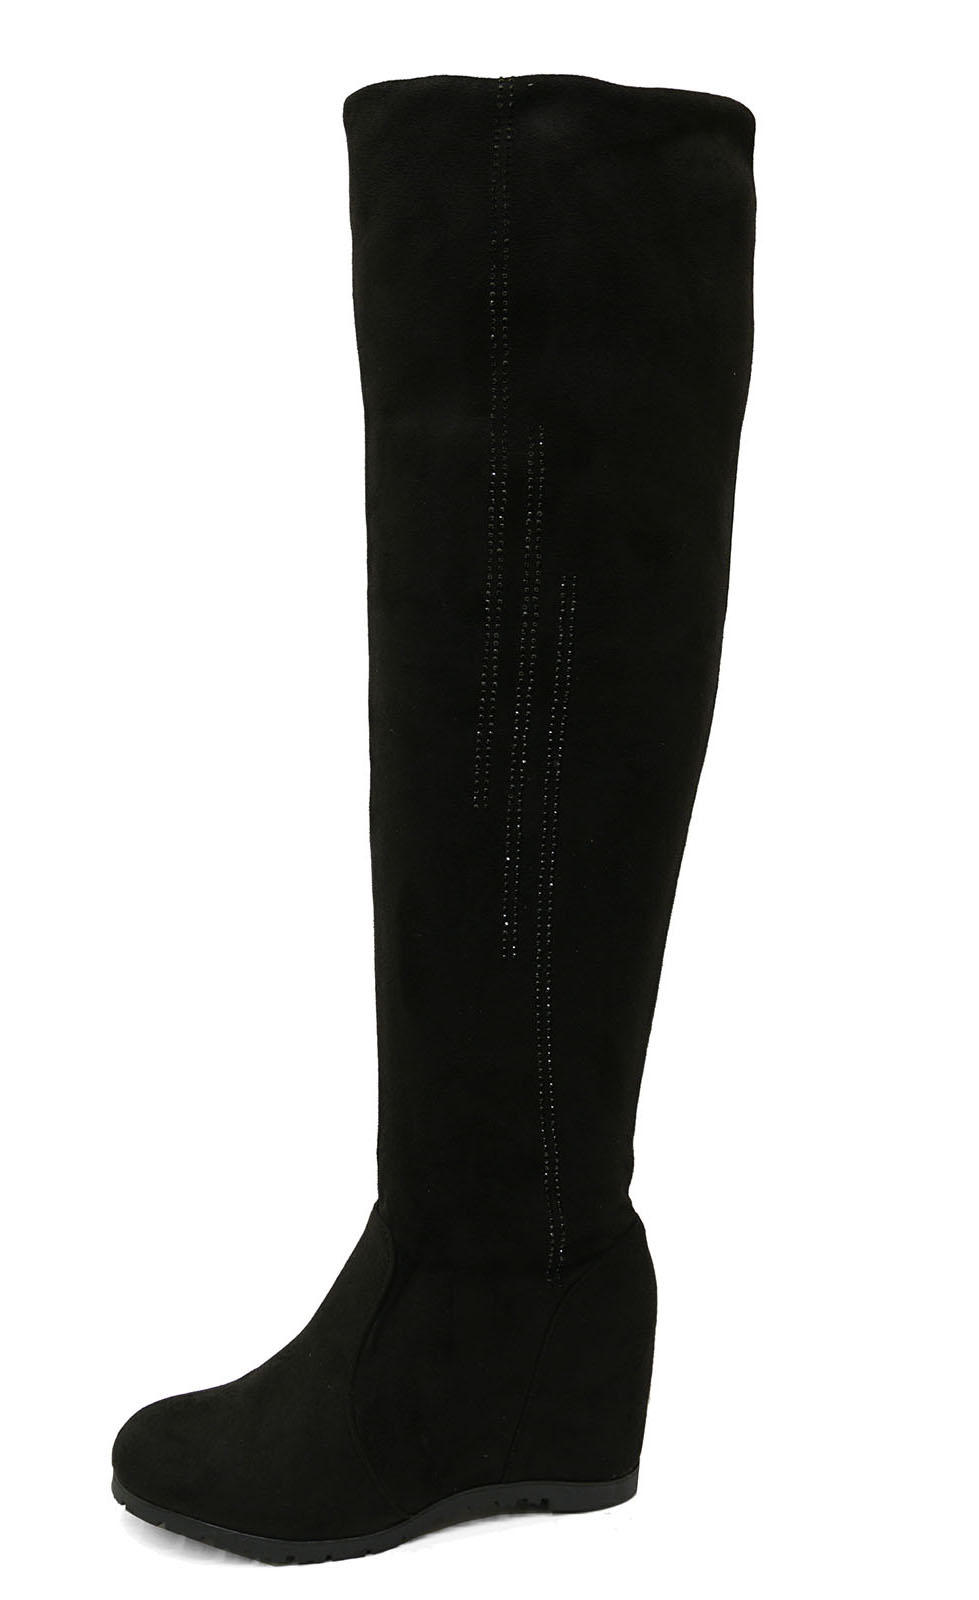 0eda22c7963 Ladies Black Soft Stretch Over The Knee High Ruched Wedge BOOTS ...